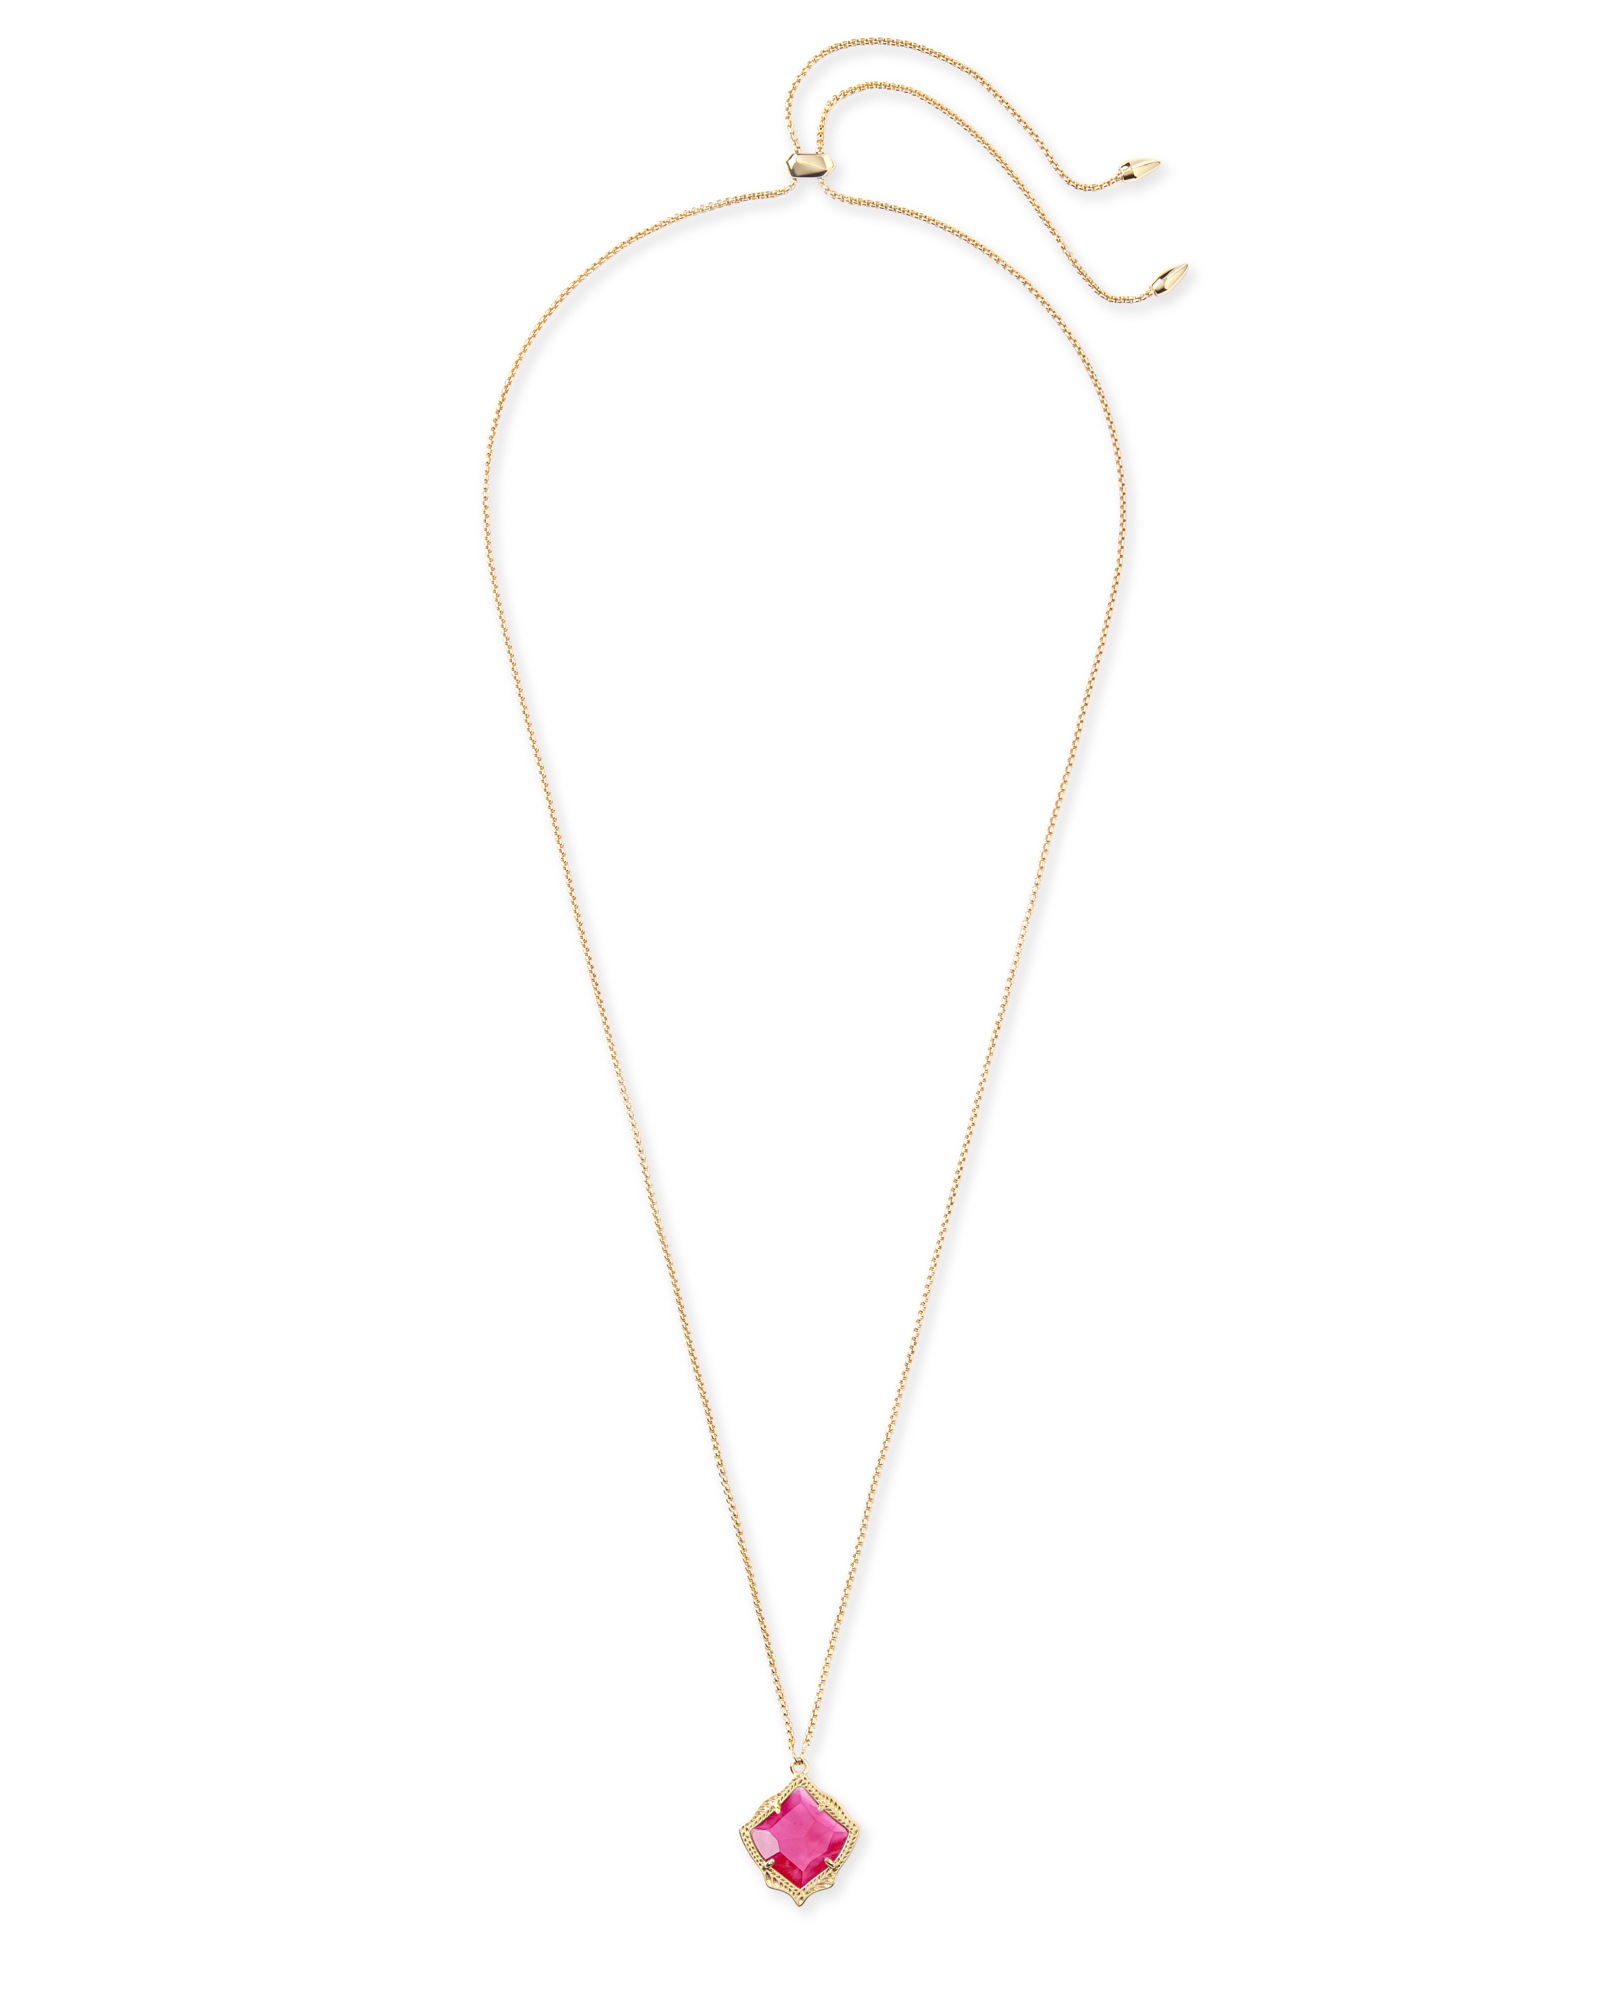 Kacey Gold Long Pendant Necklace in Azalea Illusion